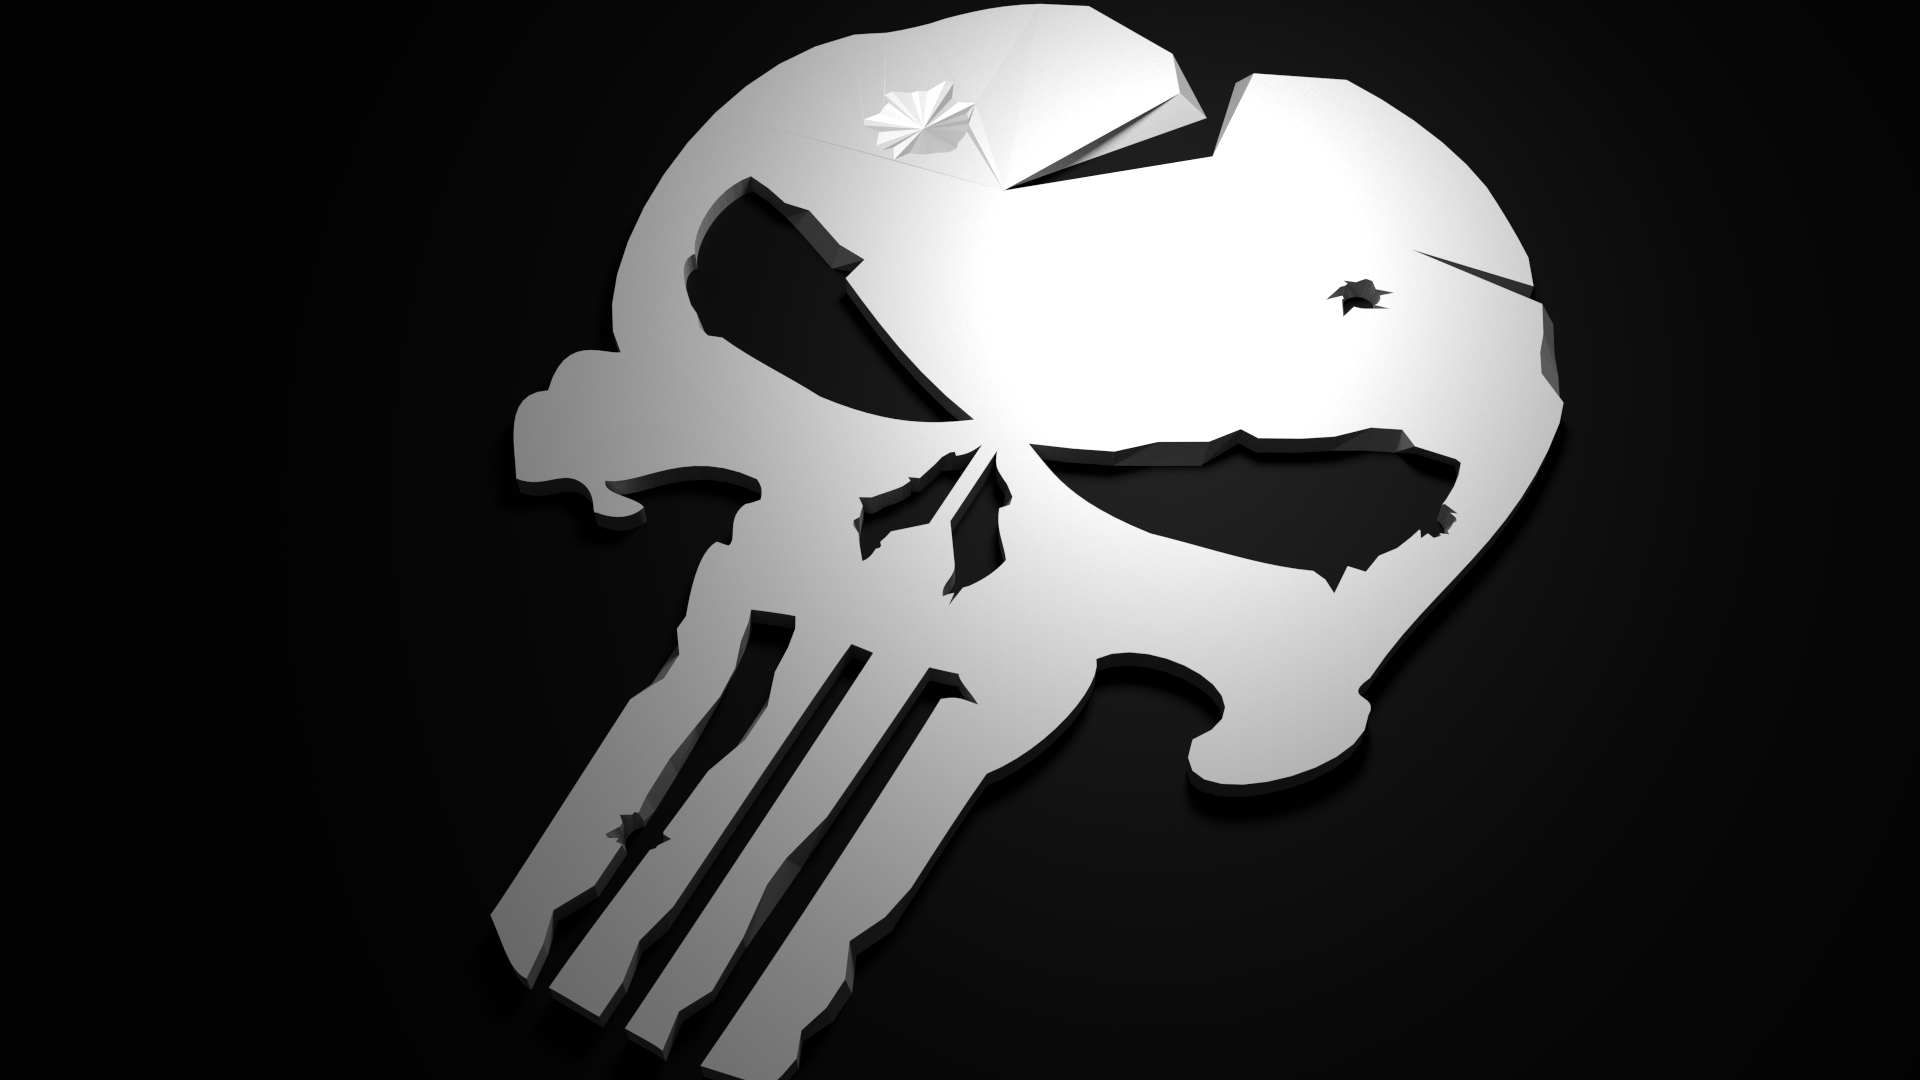 Punisher Wallpaper 1920x1080 Posted By Michelle Sellers